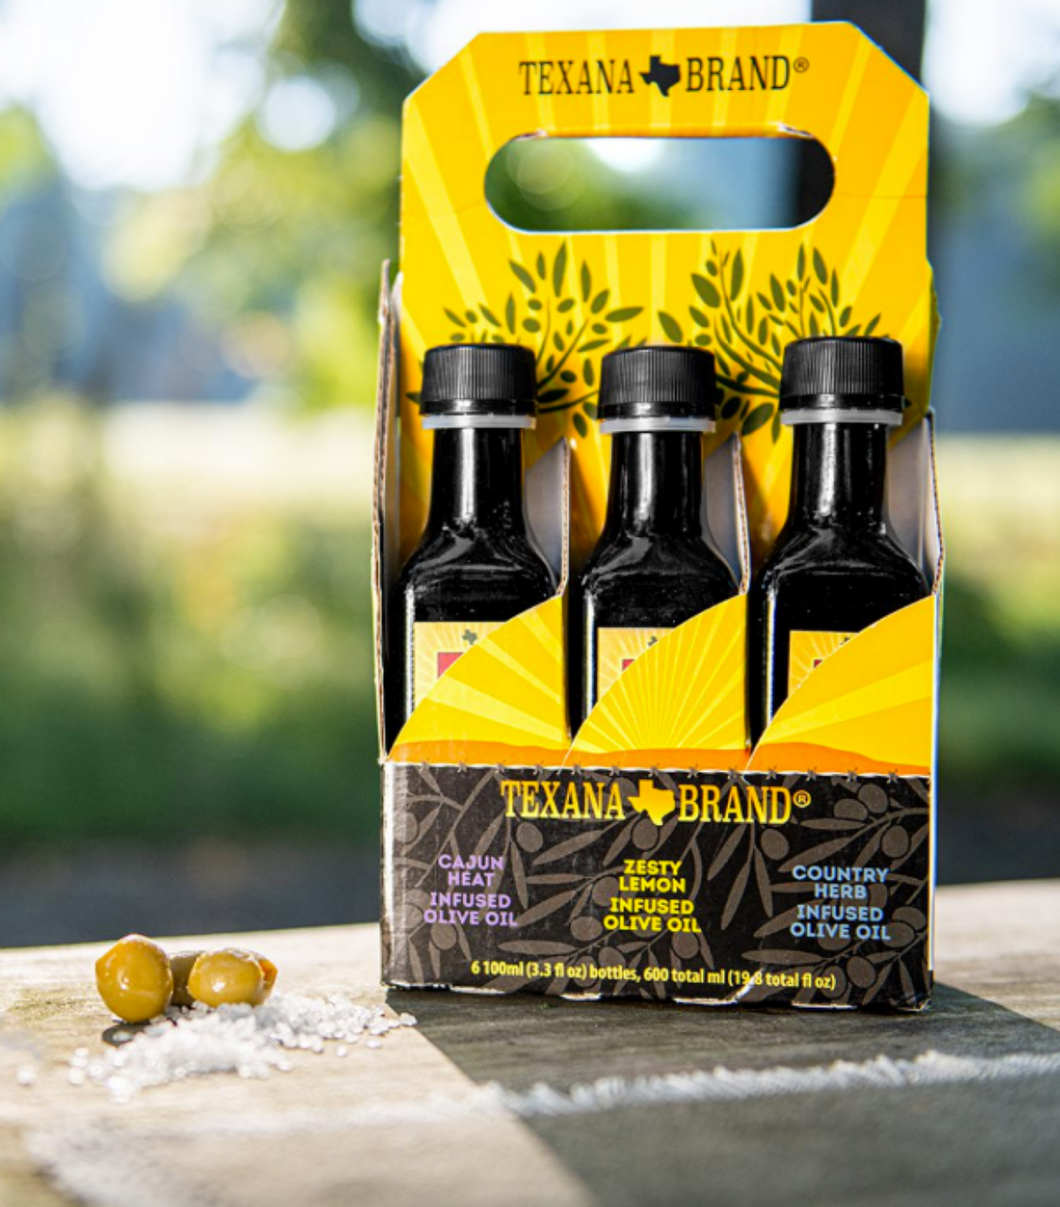 Texana Brand Extra Virgin, Roasted Garlic, Smokey Mesquite, Cajun Heat, Zesty Lemon, and Country Herb  Six-Pack Sampler (3.3 oz Bottles)